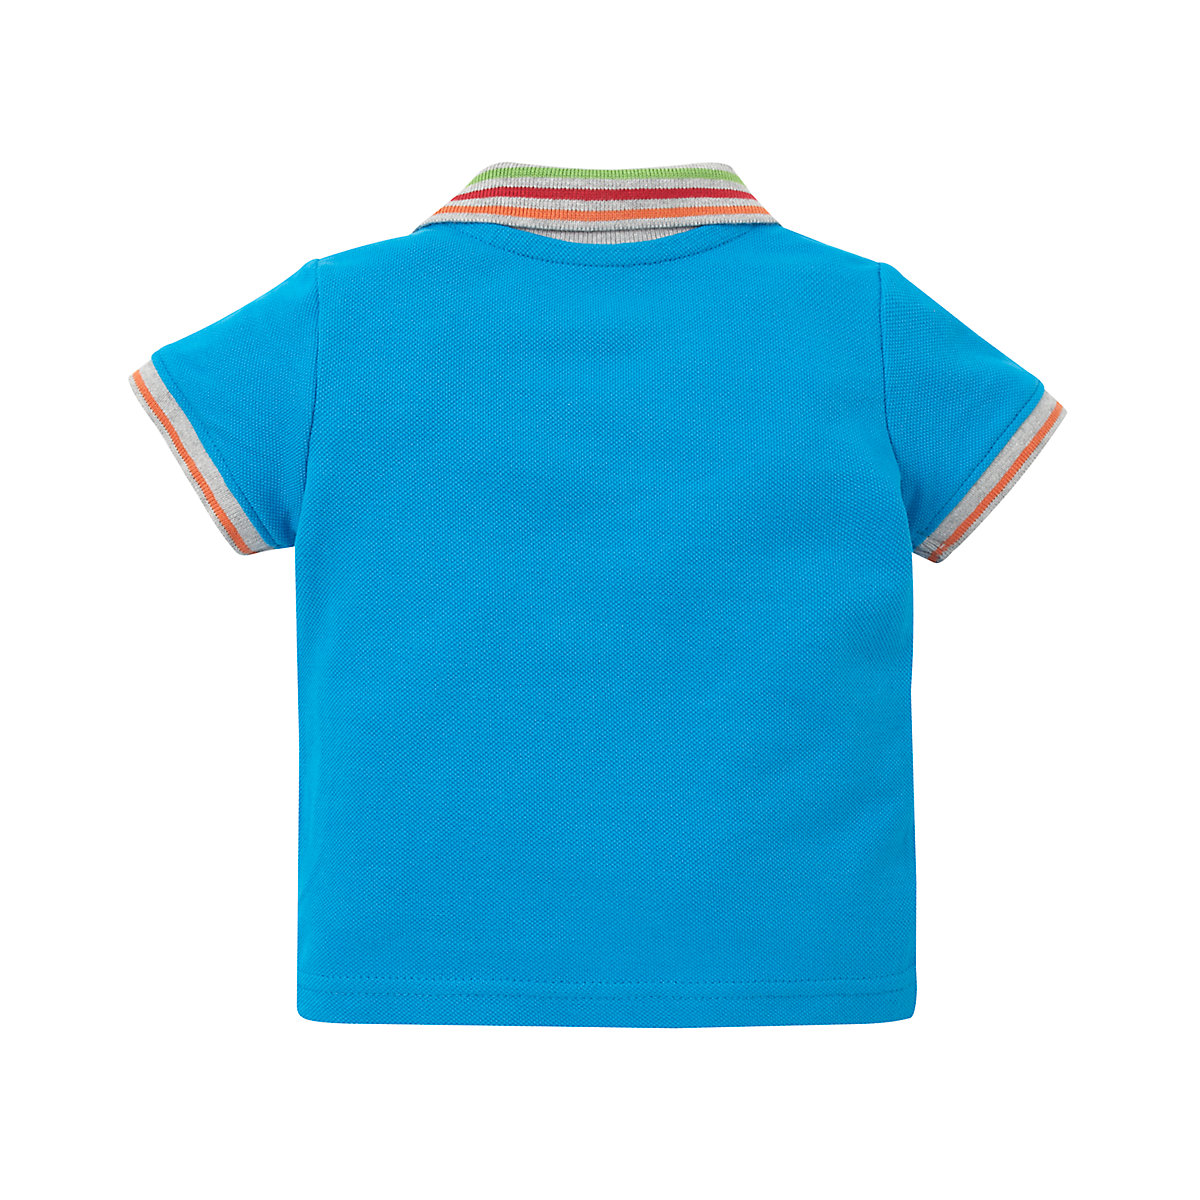 Shop neo-craft.gq with free shipping. Discover the baby boys' t-shirts and polos collection. Enjoy complimentary gift wrapping.